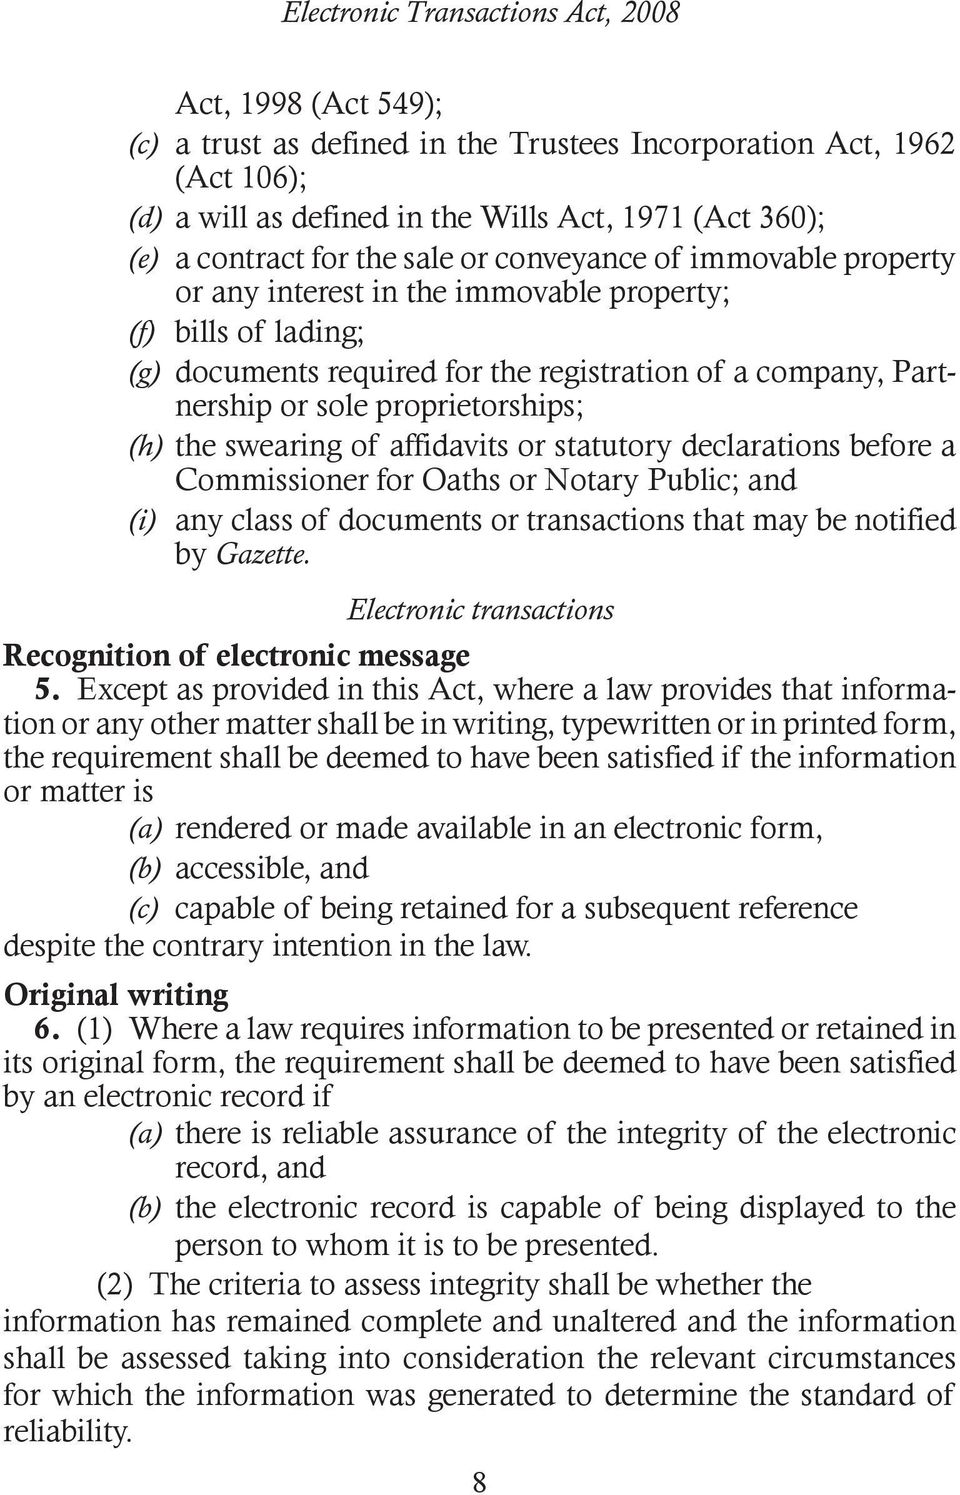 proprietorships; (h) the swearing of affidavits or statutory declarations before a Commissioner for Oaths or Notary Public; and (i) any class of documents or transactions that may be notified by